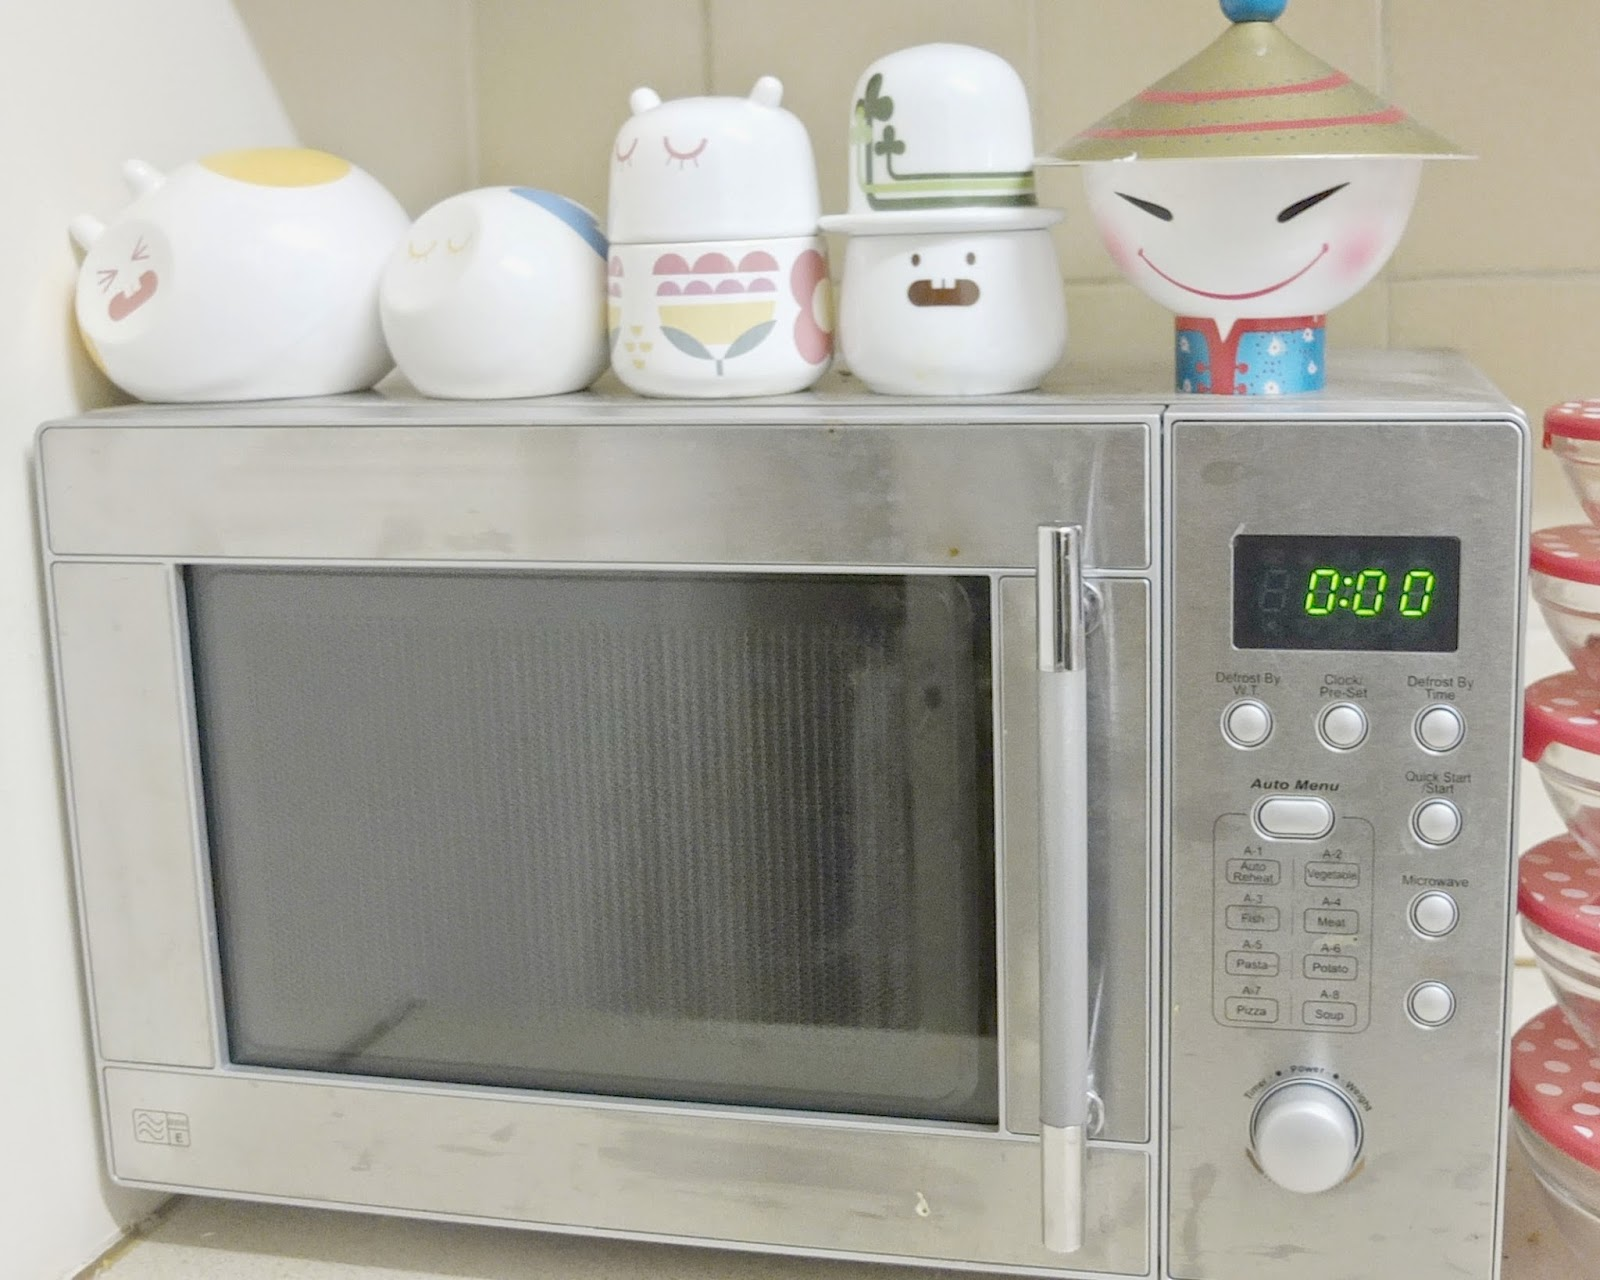 Unconventional Uses For Your Microwave on British lifestyle blog.